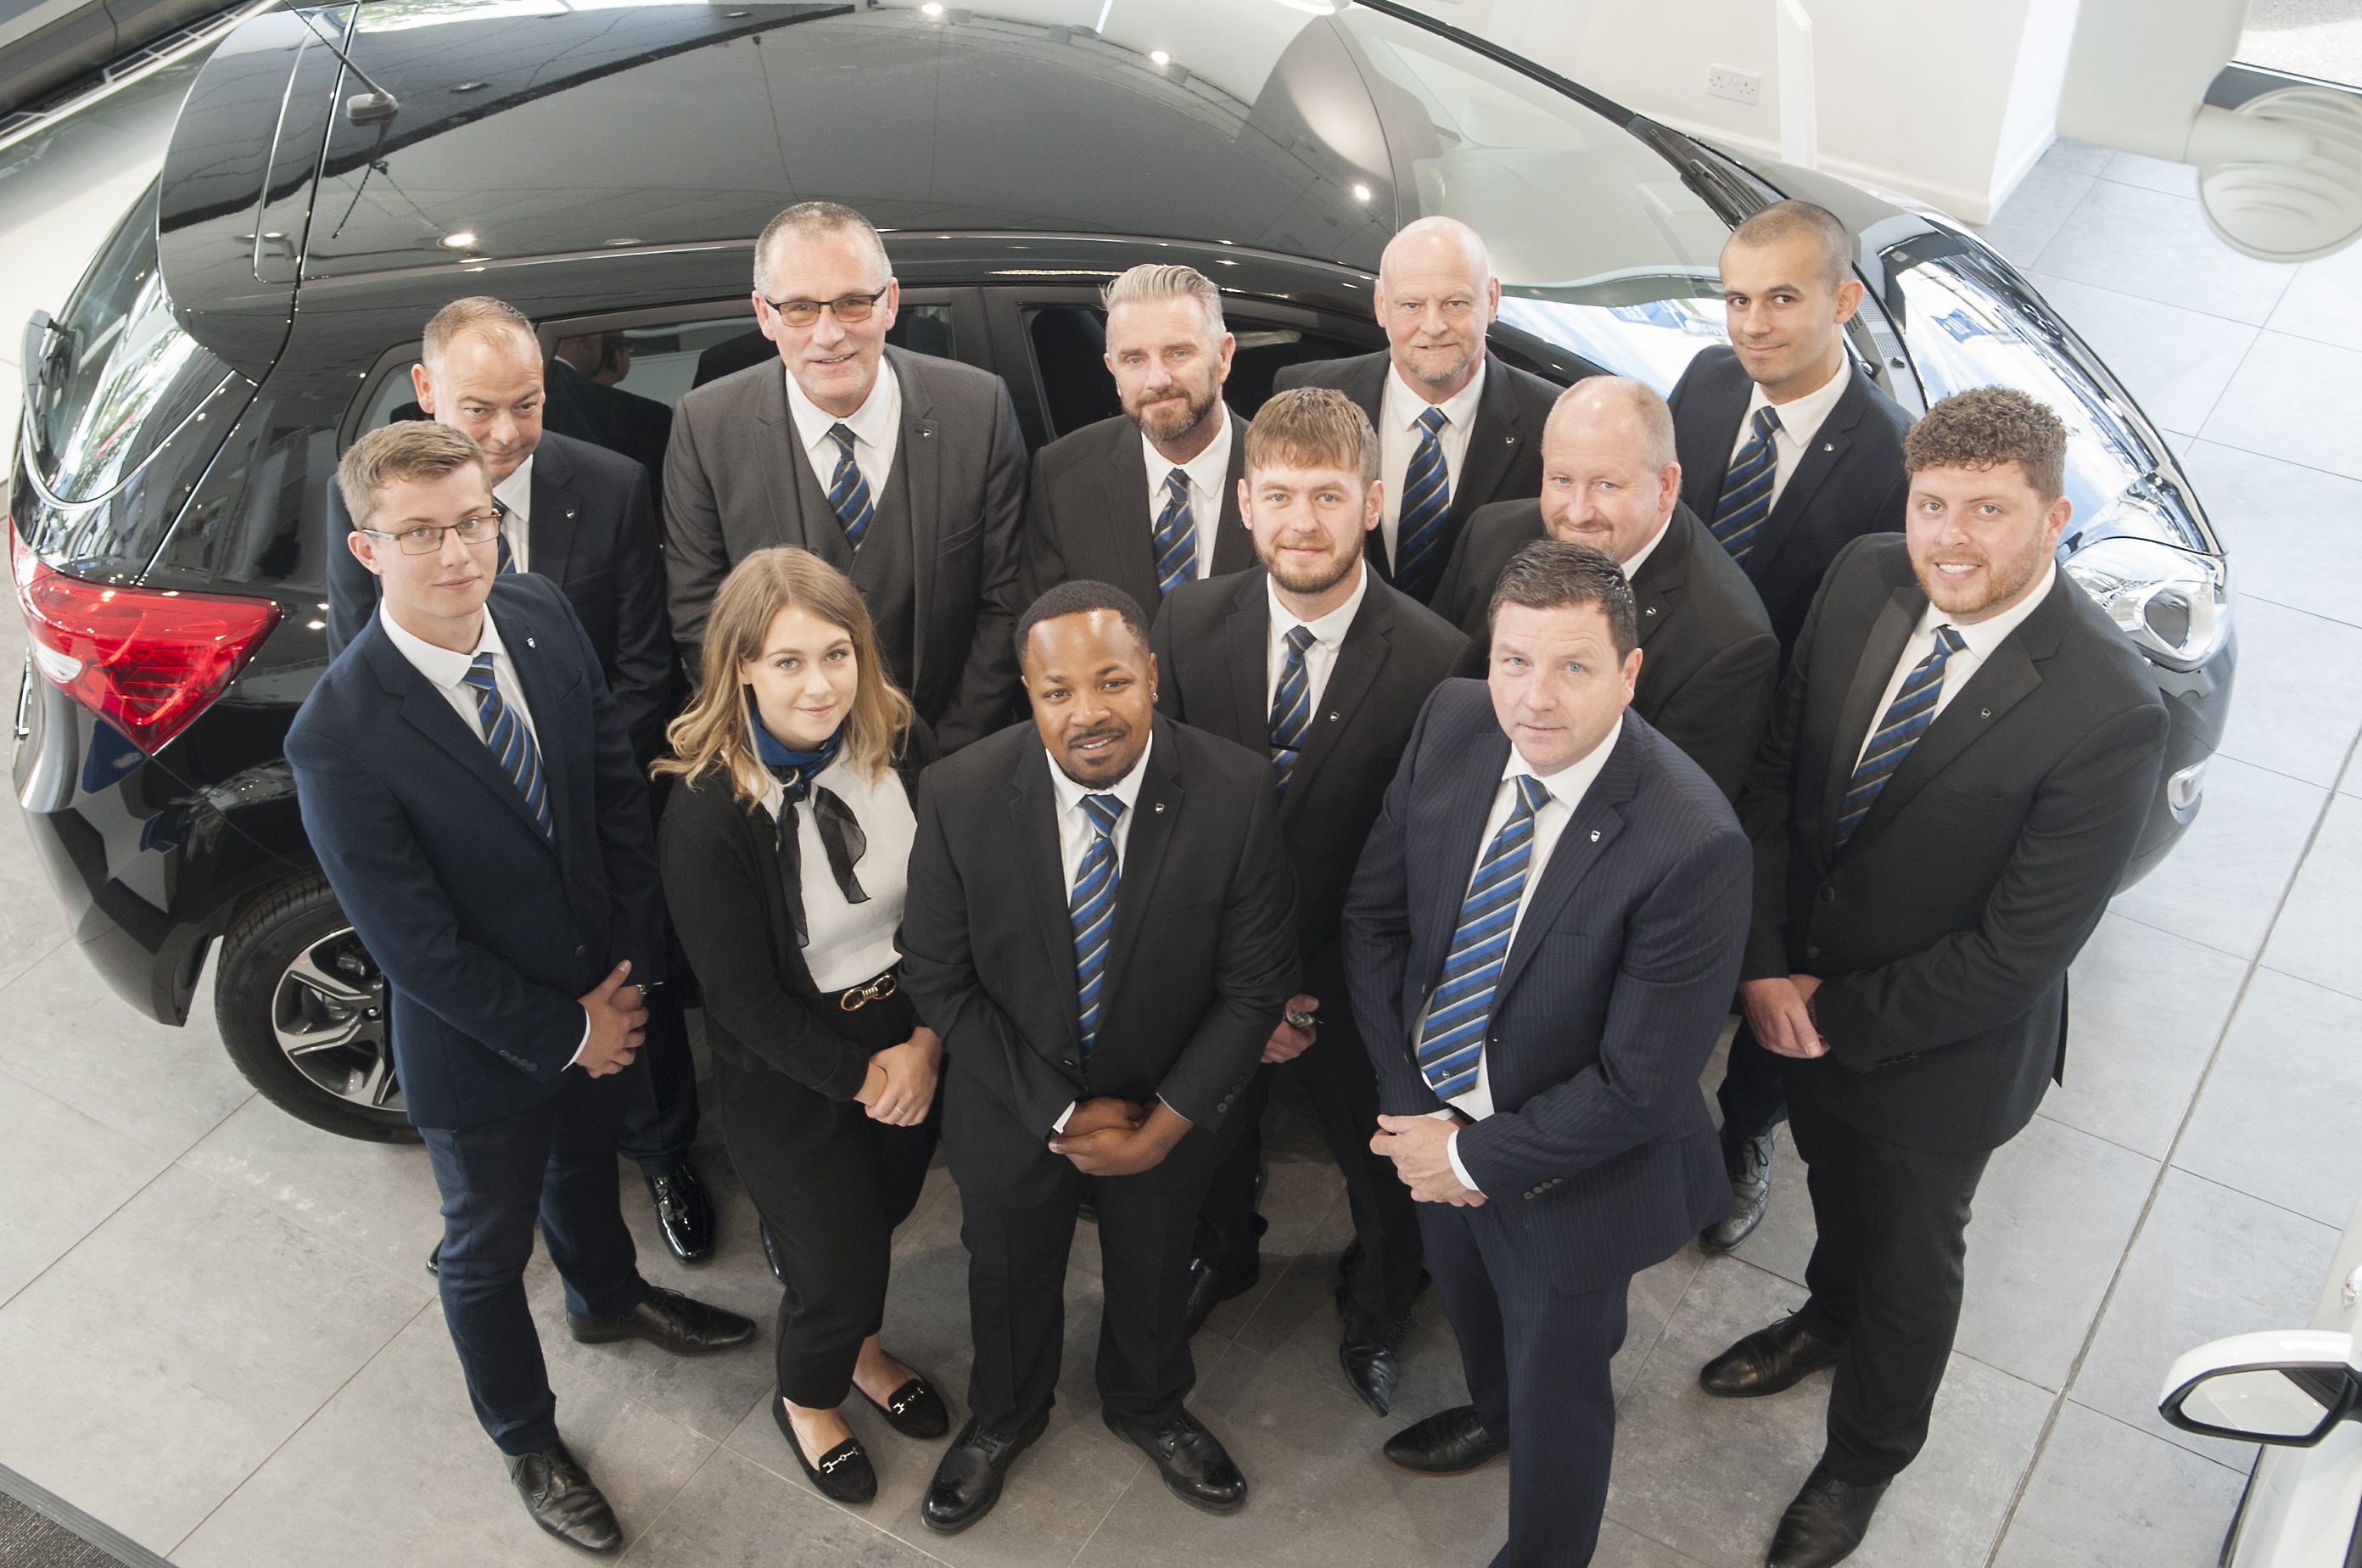 New manager shows off Hyundai Bristol Refurbishment